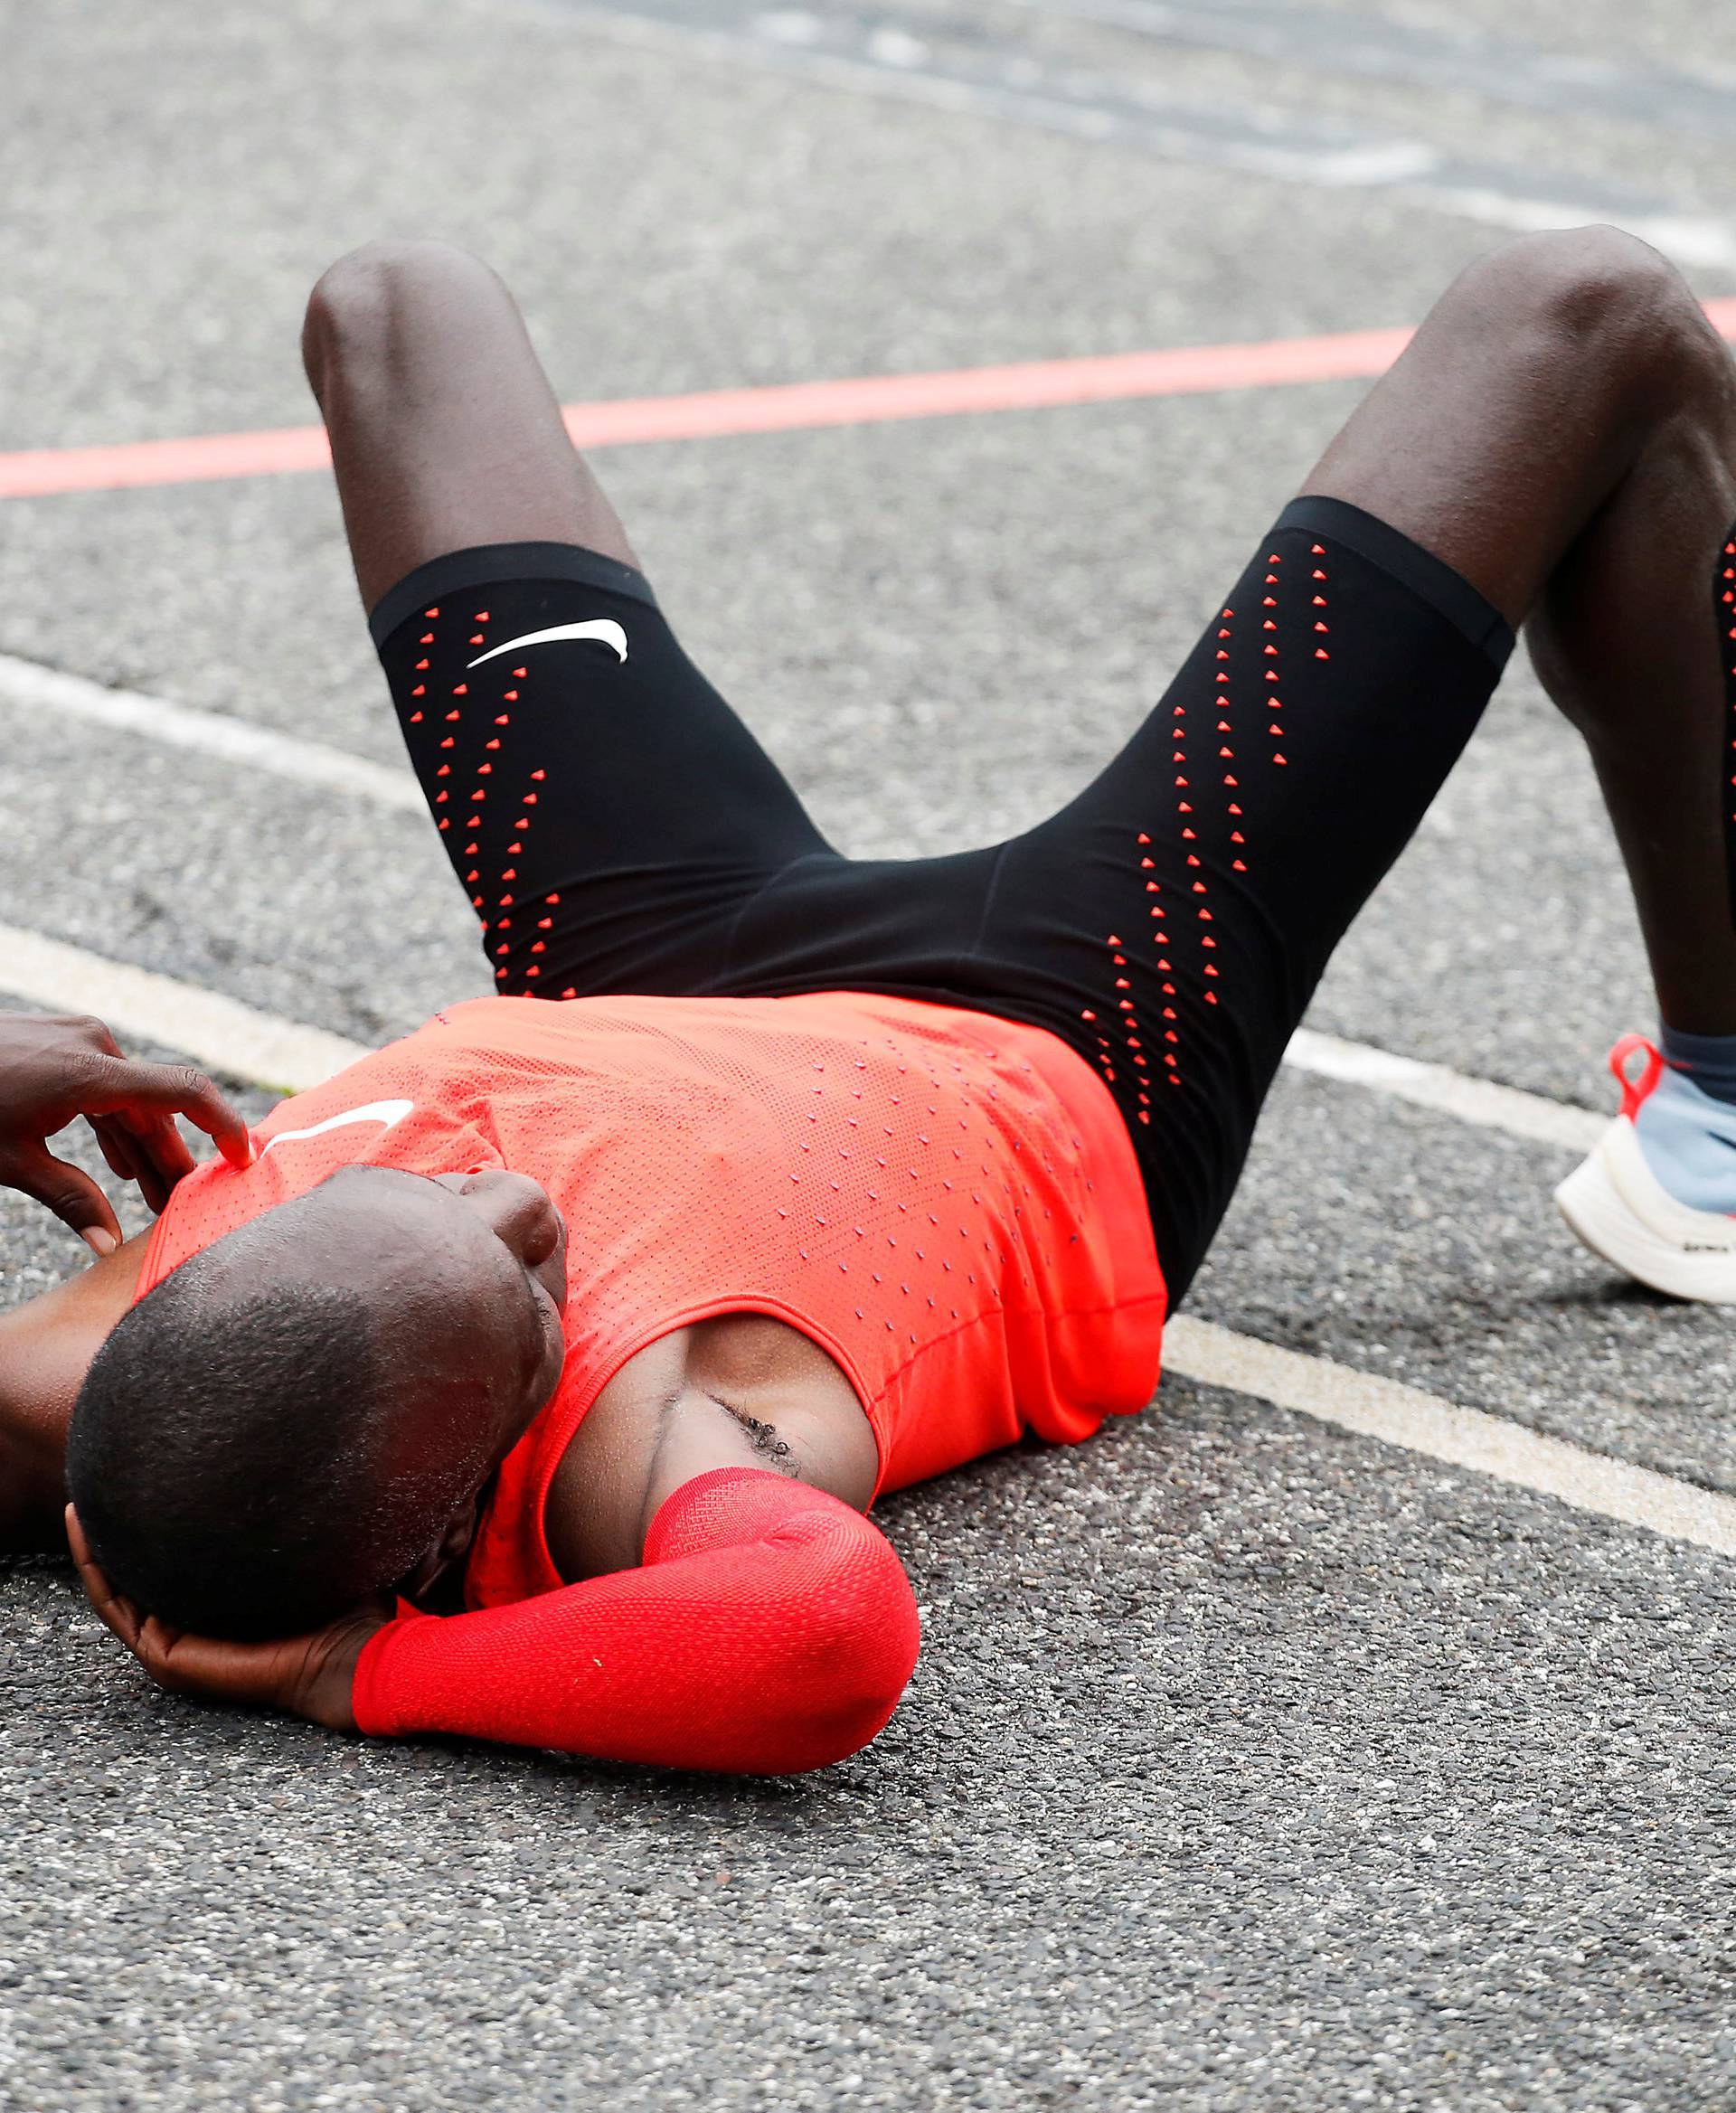 Kipchoge reacts after crossing  the finish line during an attempt to break the two-hour marathon barrier at the Monza circuit.